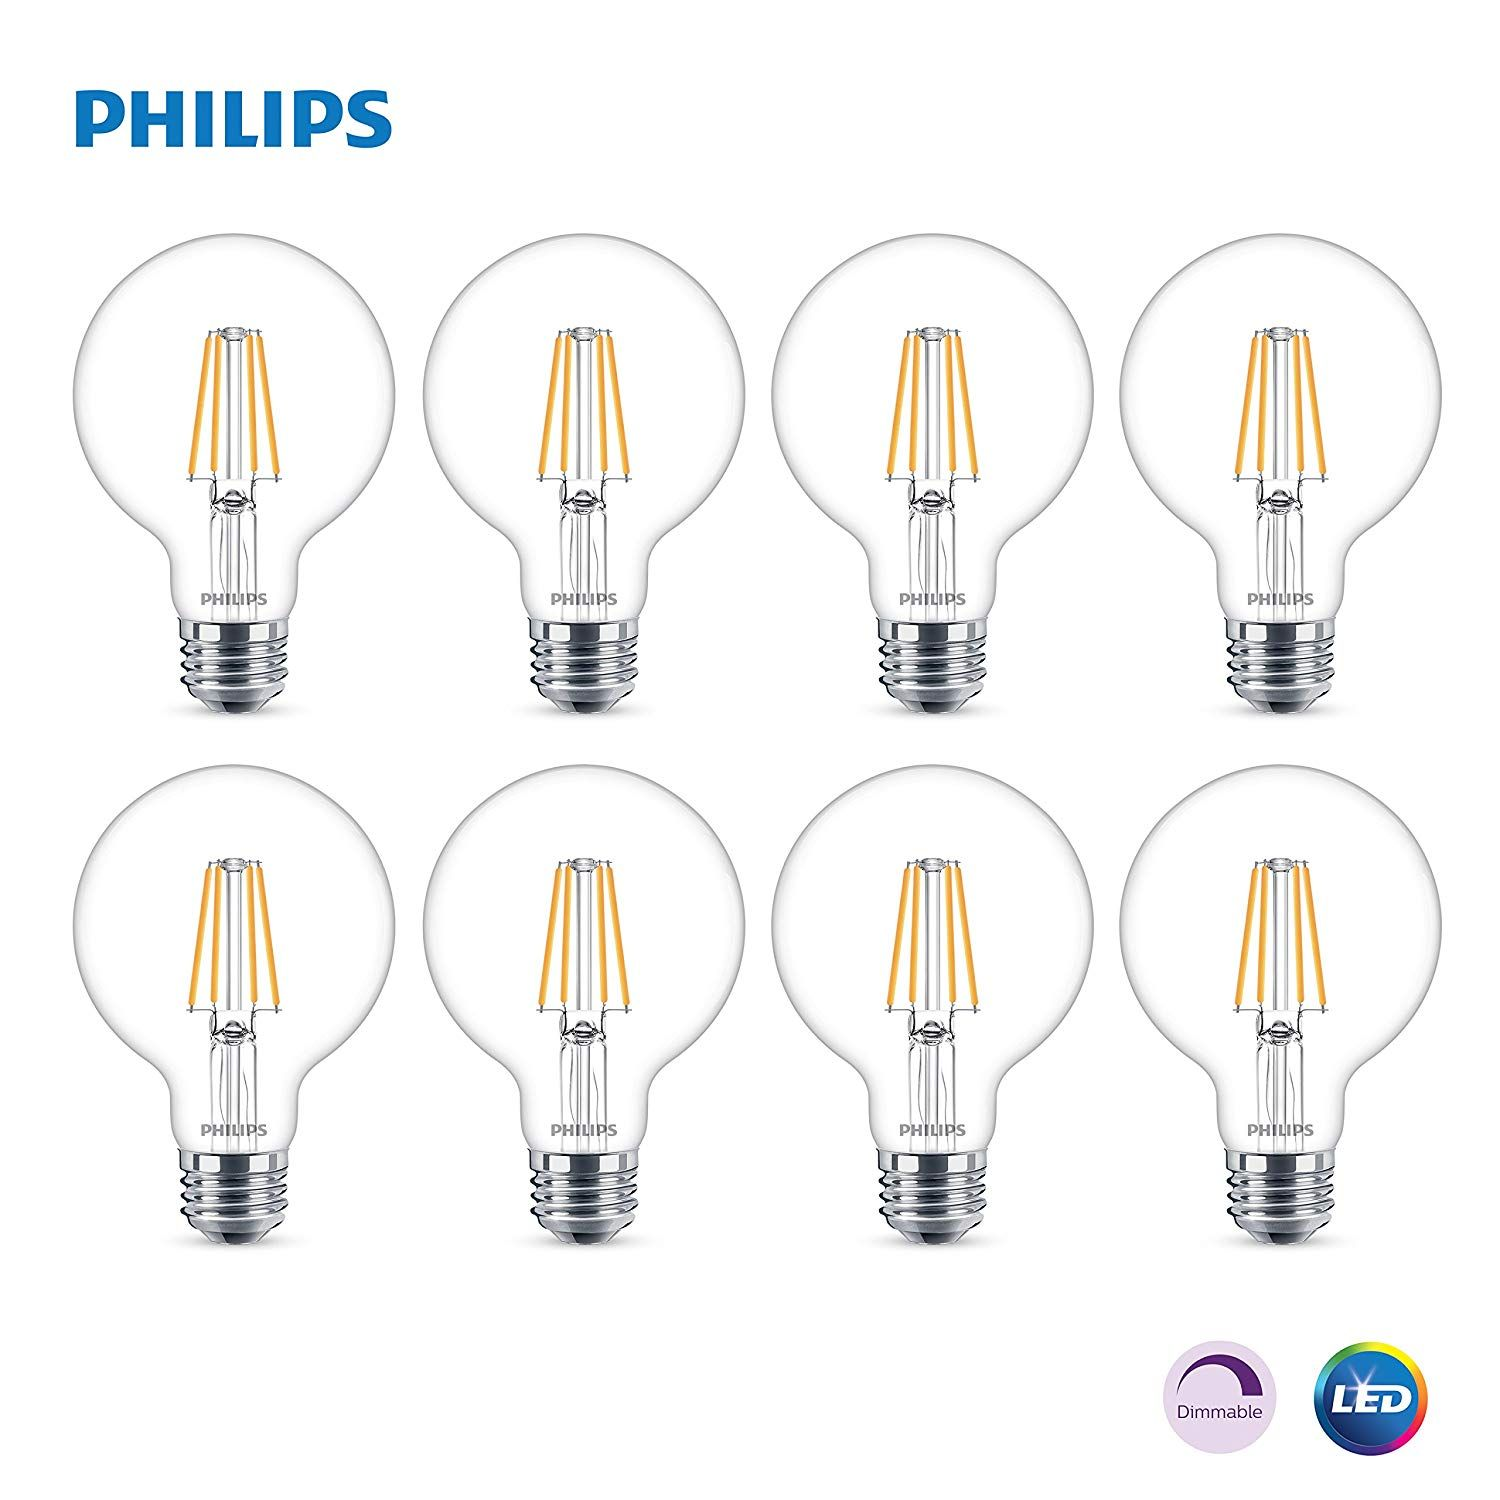 Philips Led Dimmable G25 Light Bulb 5000 Lumen 5000 Kelvin 6 Watt 60 Watt Equivalent E26 Base Clear Daylight 8 Pack See T Philips Led Led Bulb Led